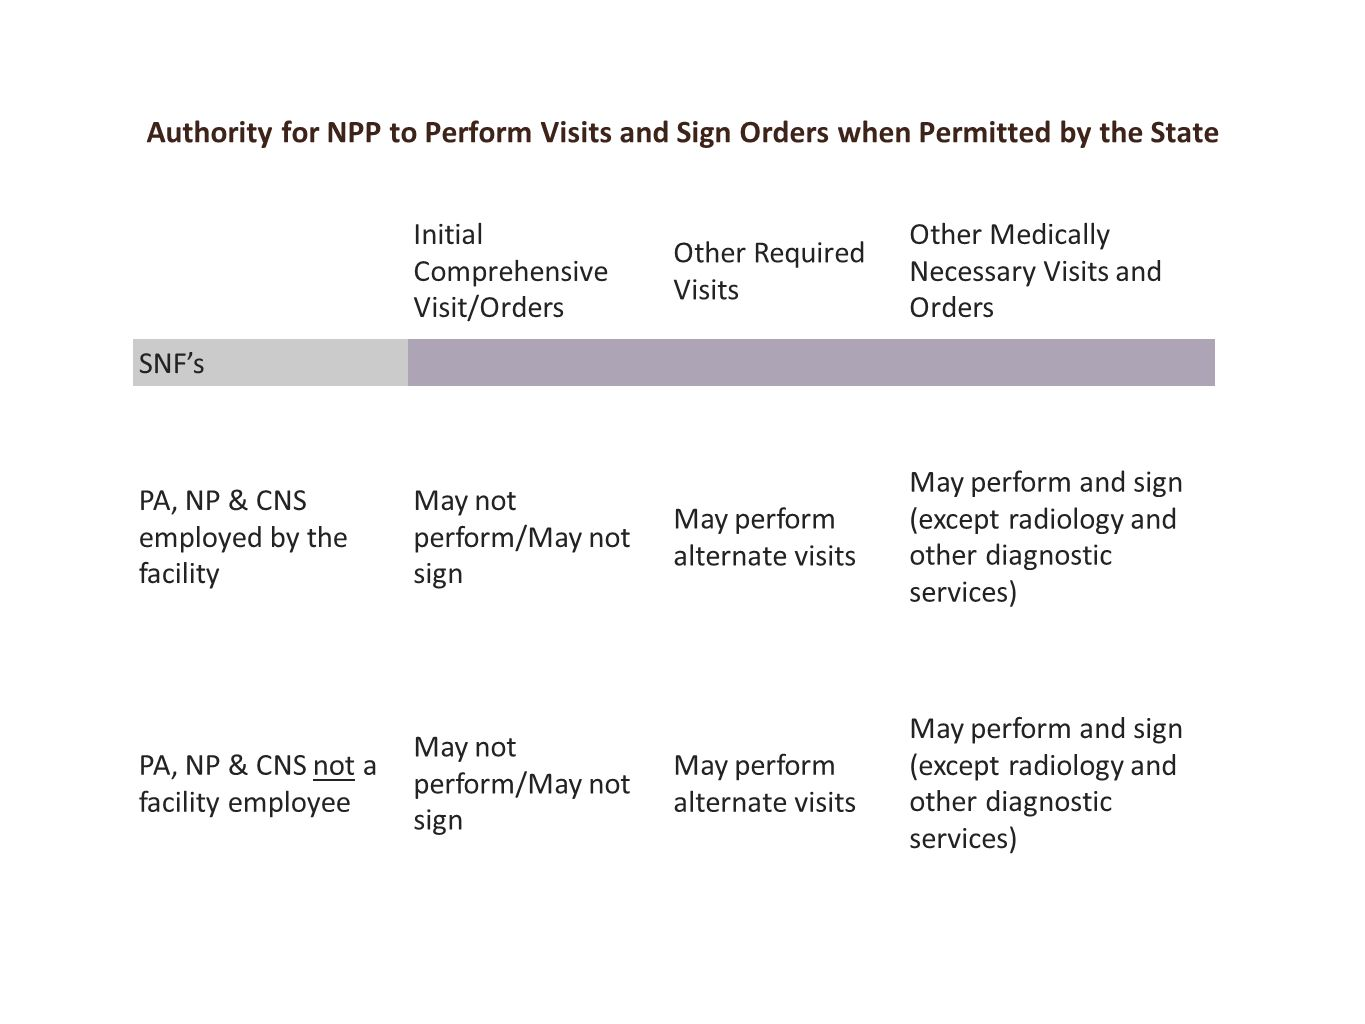 Here is are two charts – lists the authority for NPP in SNF's NEXT